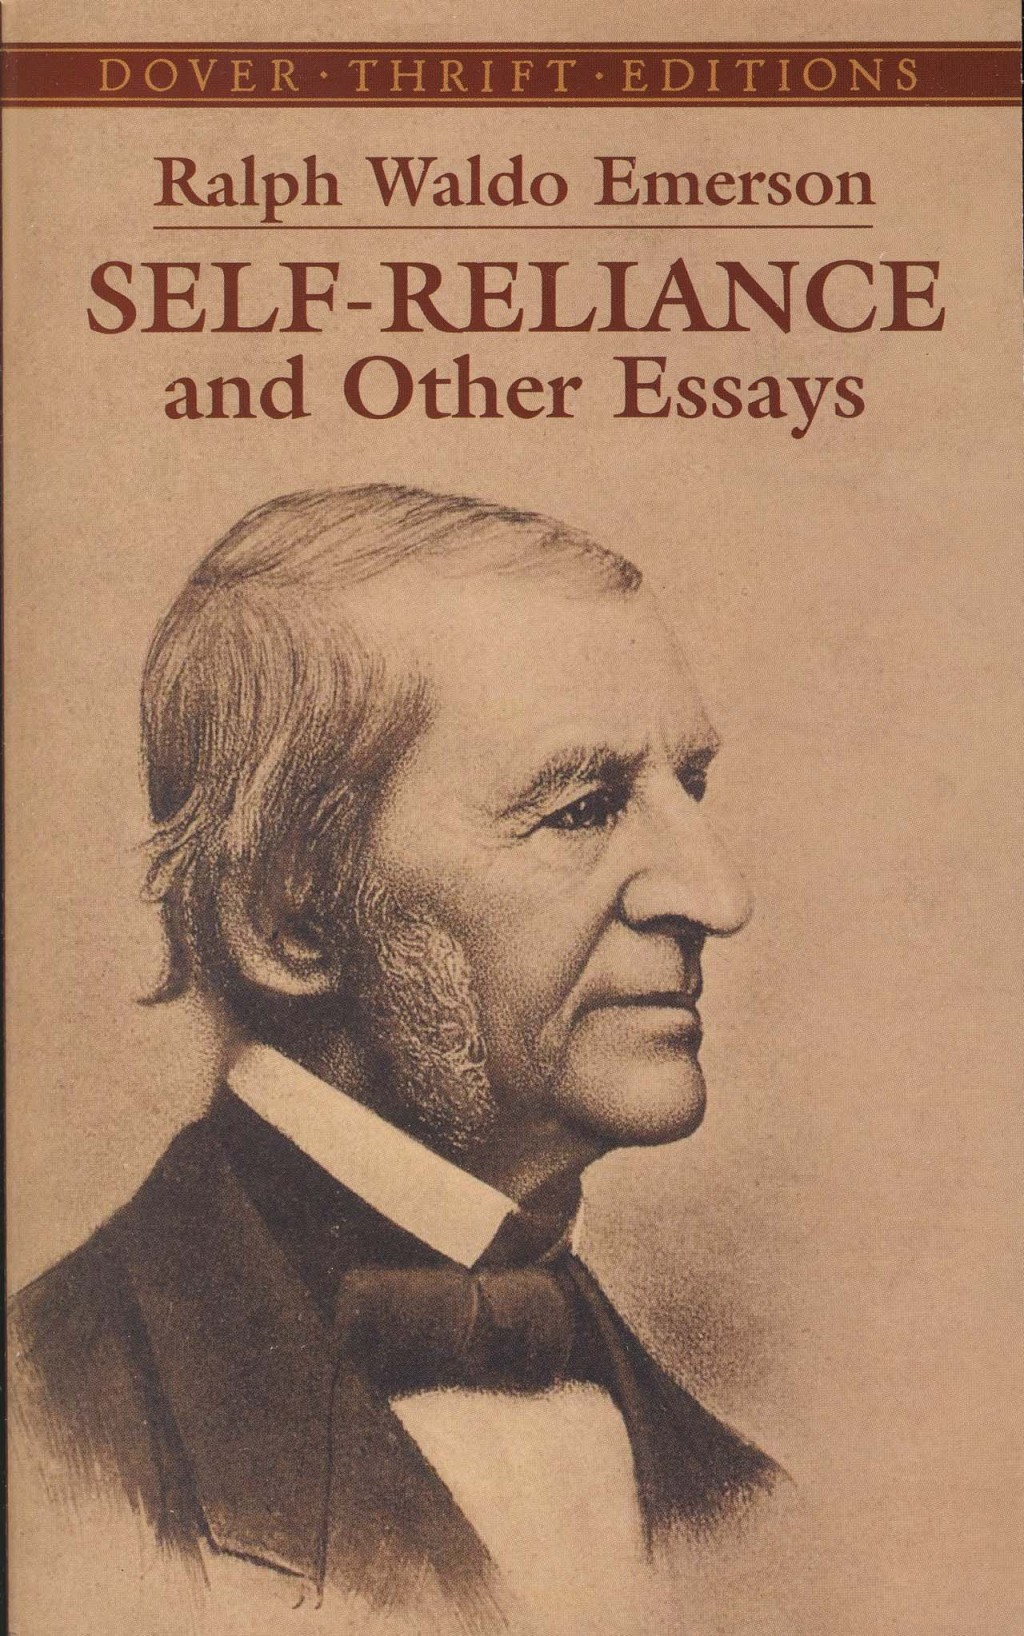 002 Essay Example Ralph Waldo Emerson Essays Unusual Nature And Selected By Pdf Download First Second Series Large